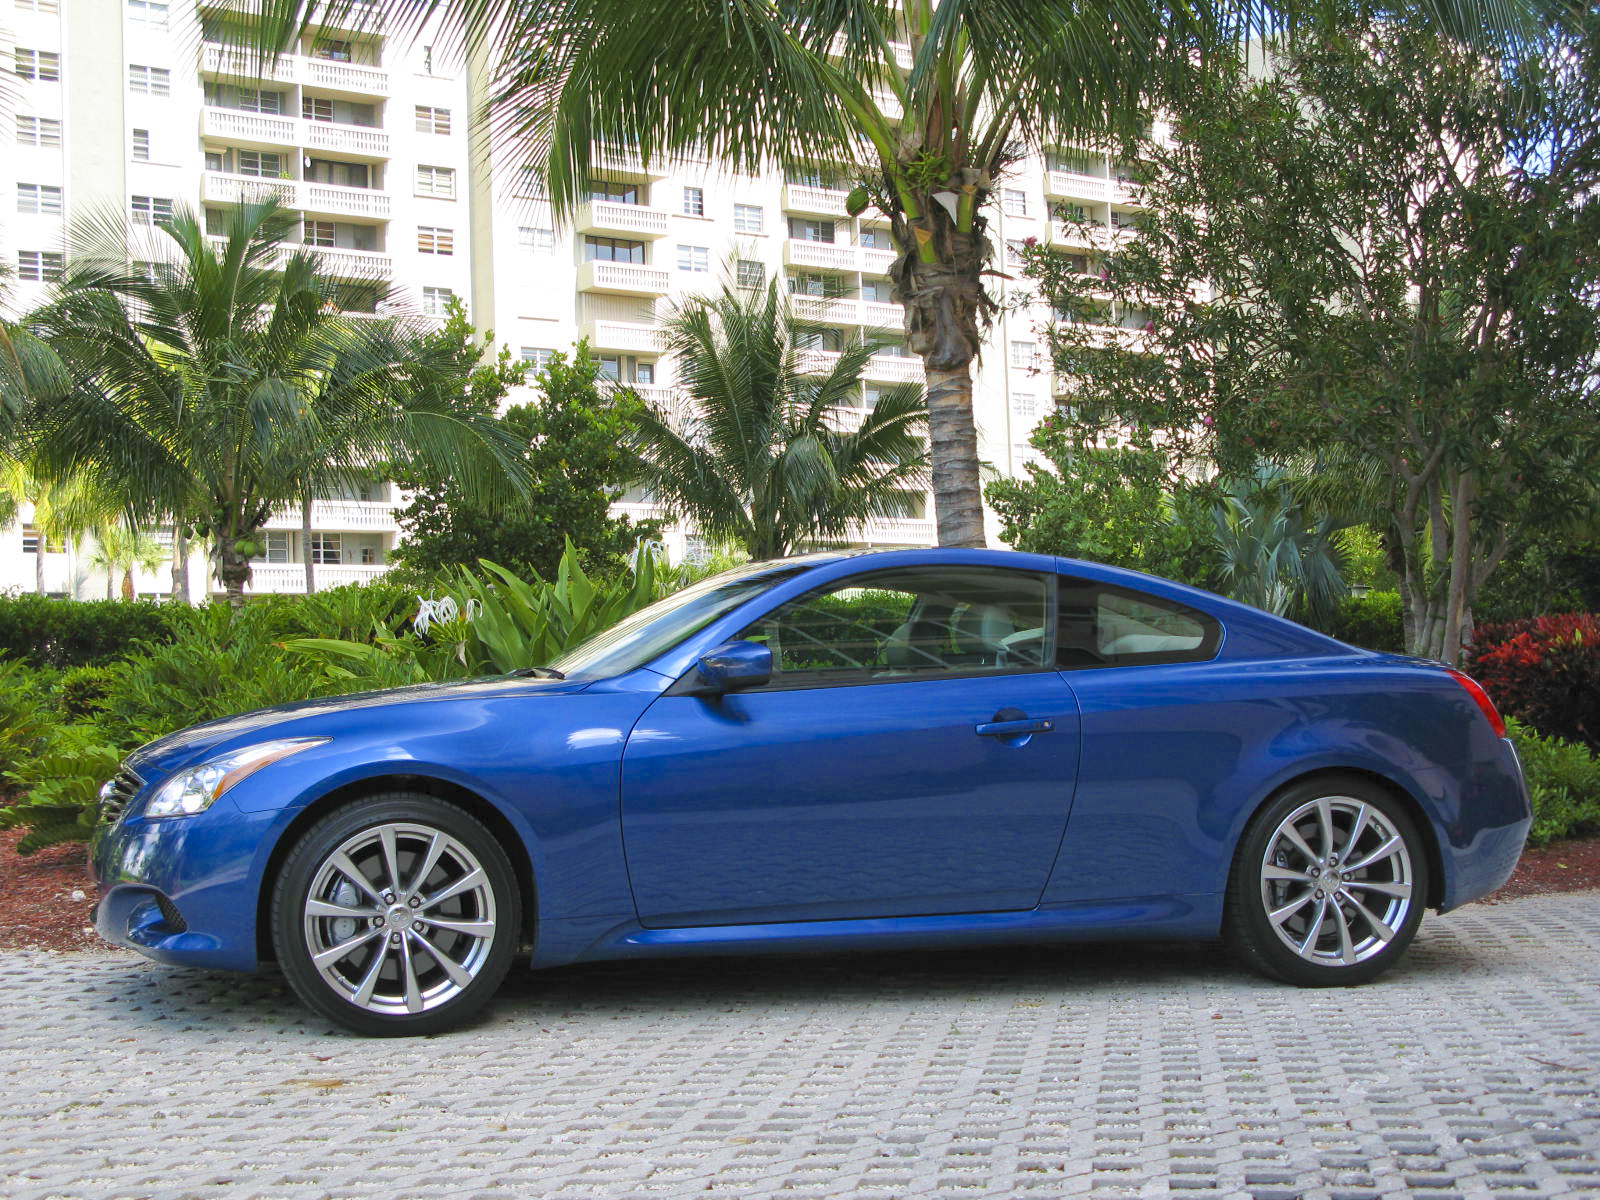 Infiniti g37 coupe mpg